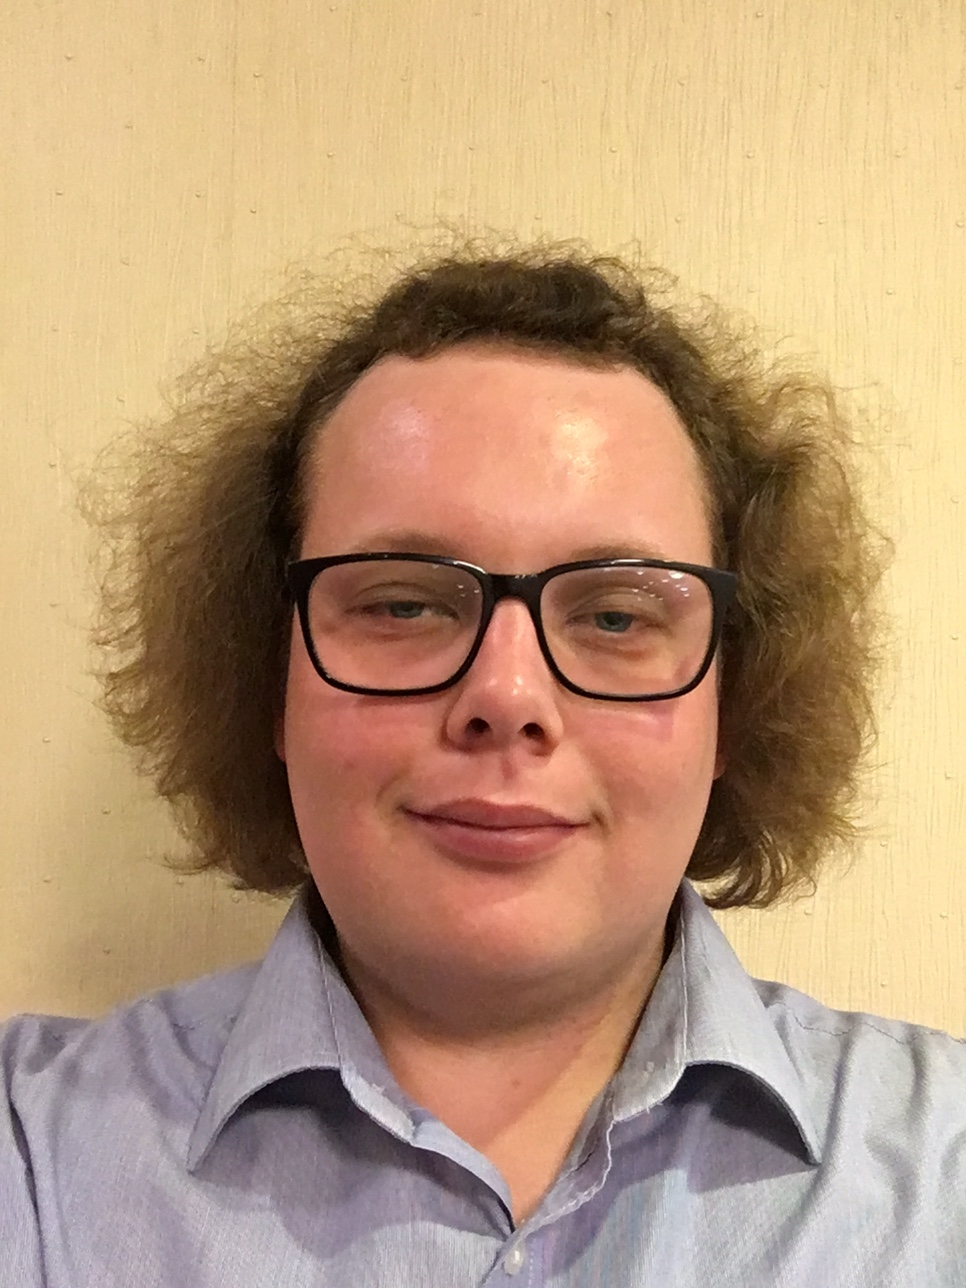 Luke Chapman - Membership Officer, Data Officer and Connect Manager